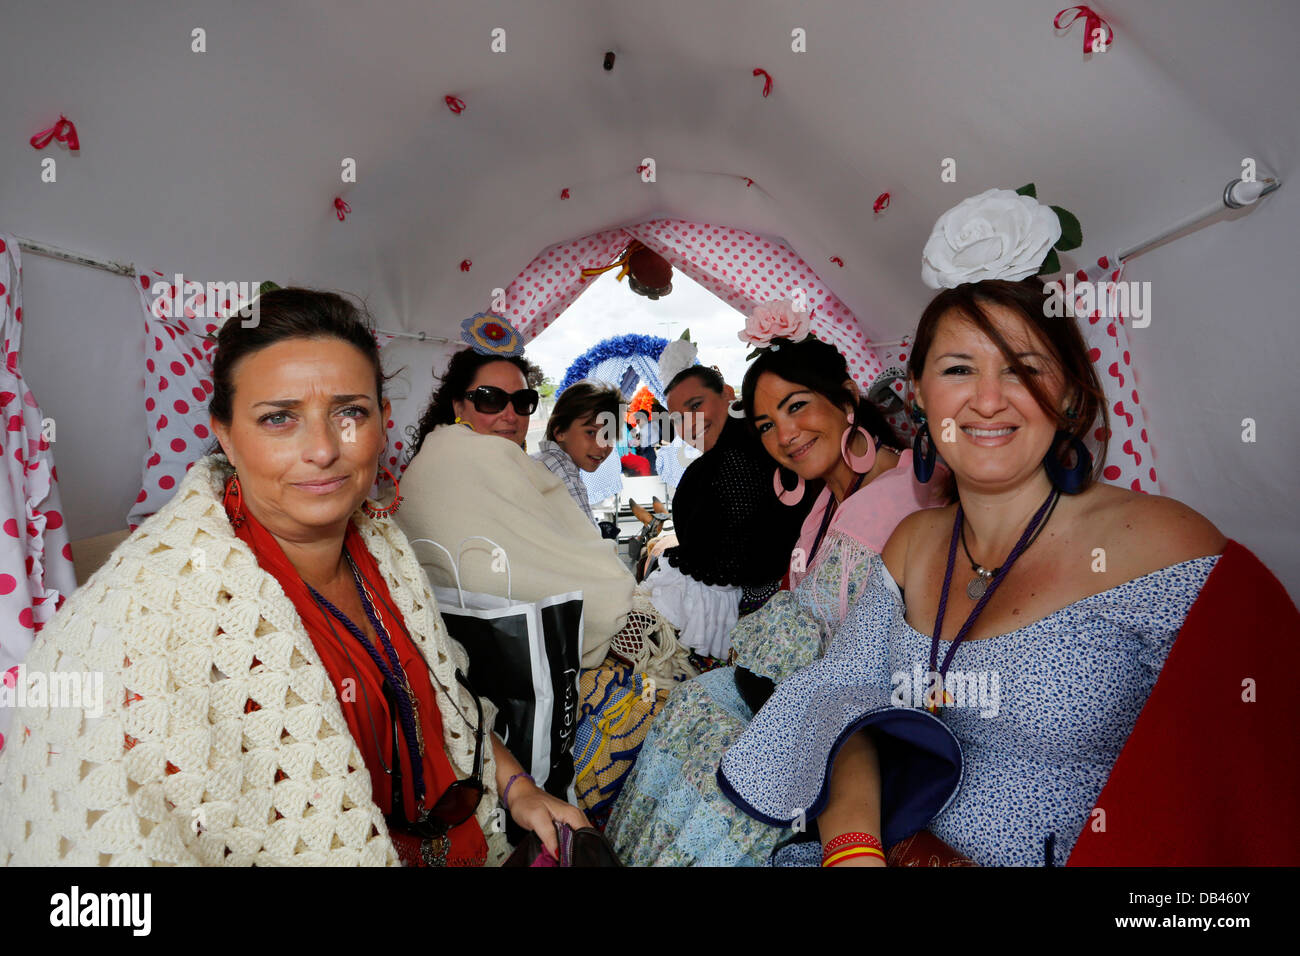 Women wearing Spanish Flamenco dresses in gypsy horse-drawn carriages on the pilgrimage route to El Rocio in Spain - Stock Image